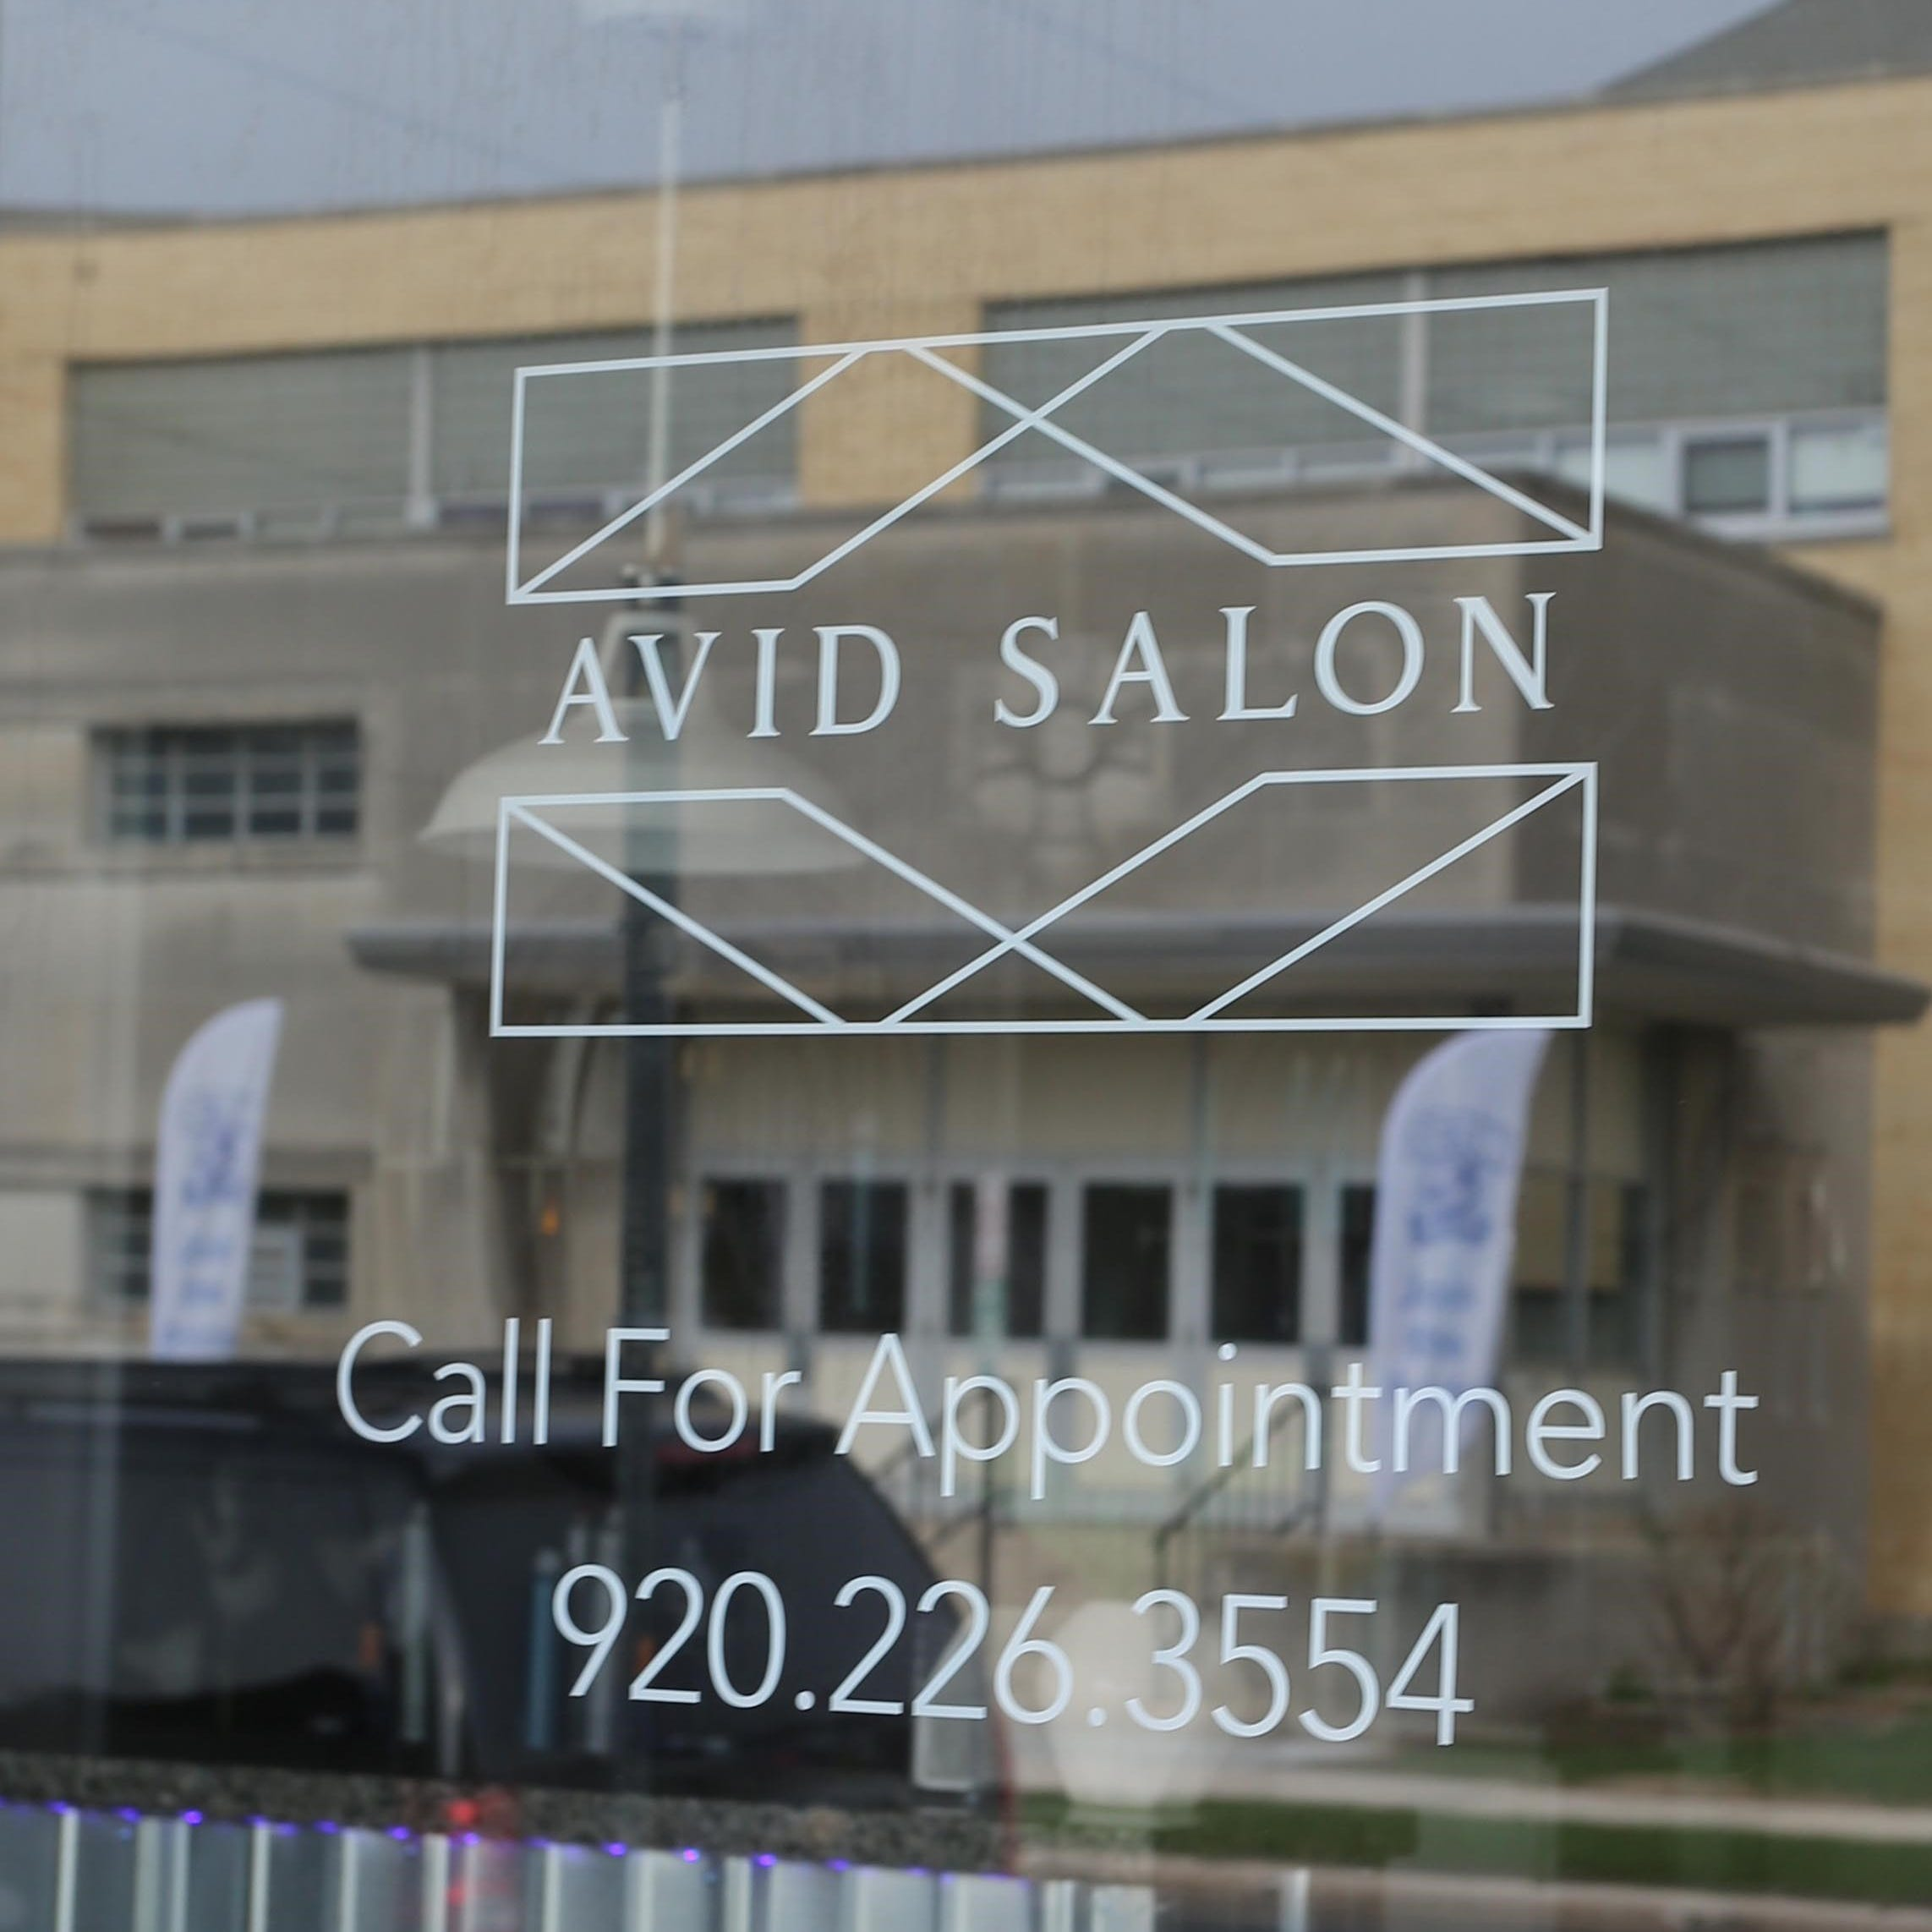 Avid Salon now open on N. 8th St. in Sheboygan | Streetwise